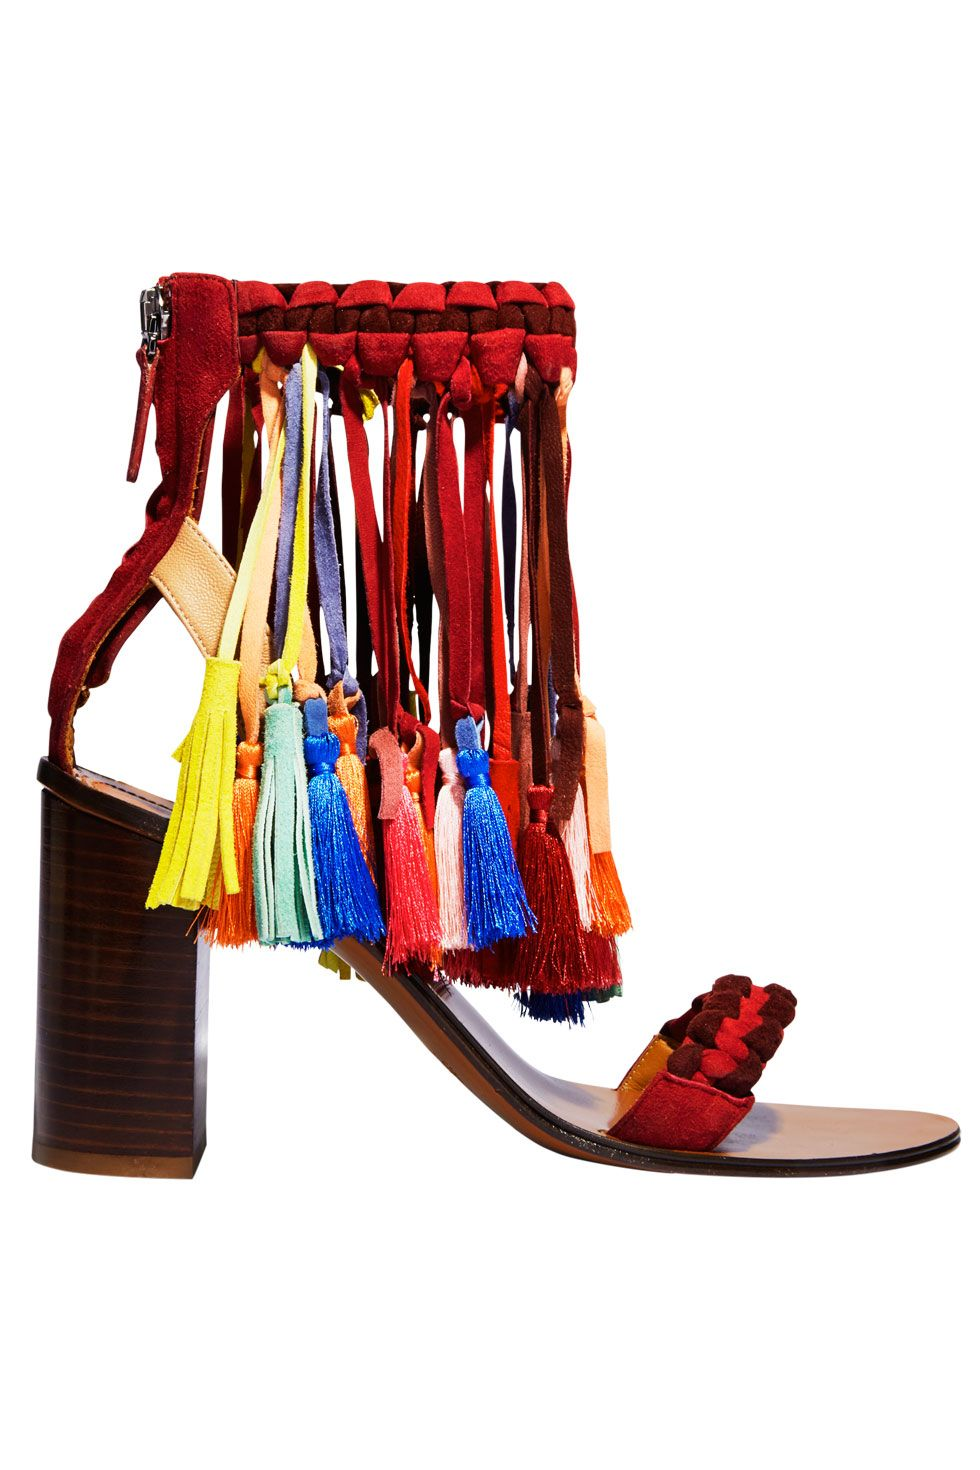 "<p><strong data-redactor-tag=""strong"" data-verified=""redactor"">Chloé </strong>sandal, $1,690, <a href=""http://www.bergdorfgoodman.com/Chloe/Most-Wanted/cat70001_cat410914_cat000000/c.cat"">bergdorfgoodman.com</a>.</p>"